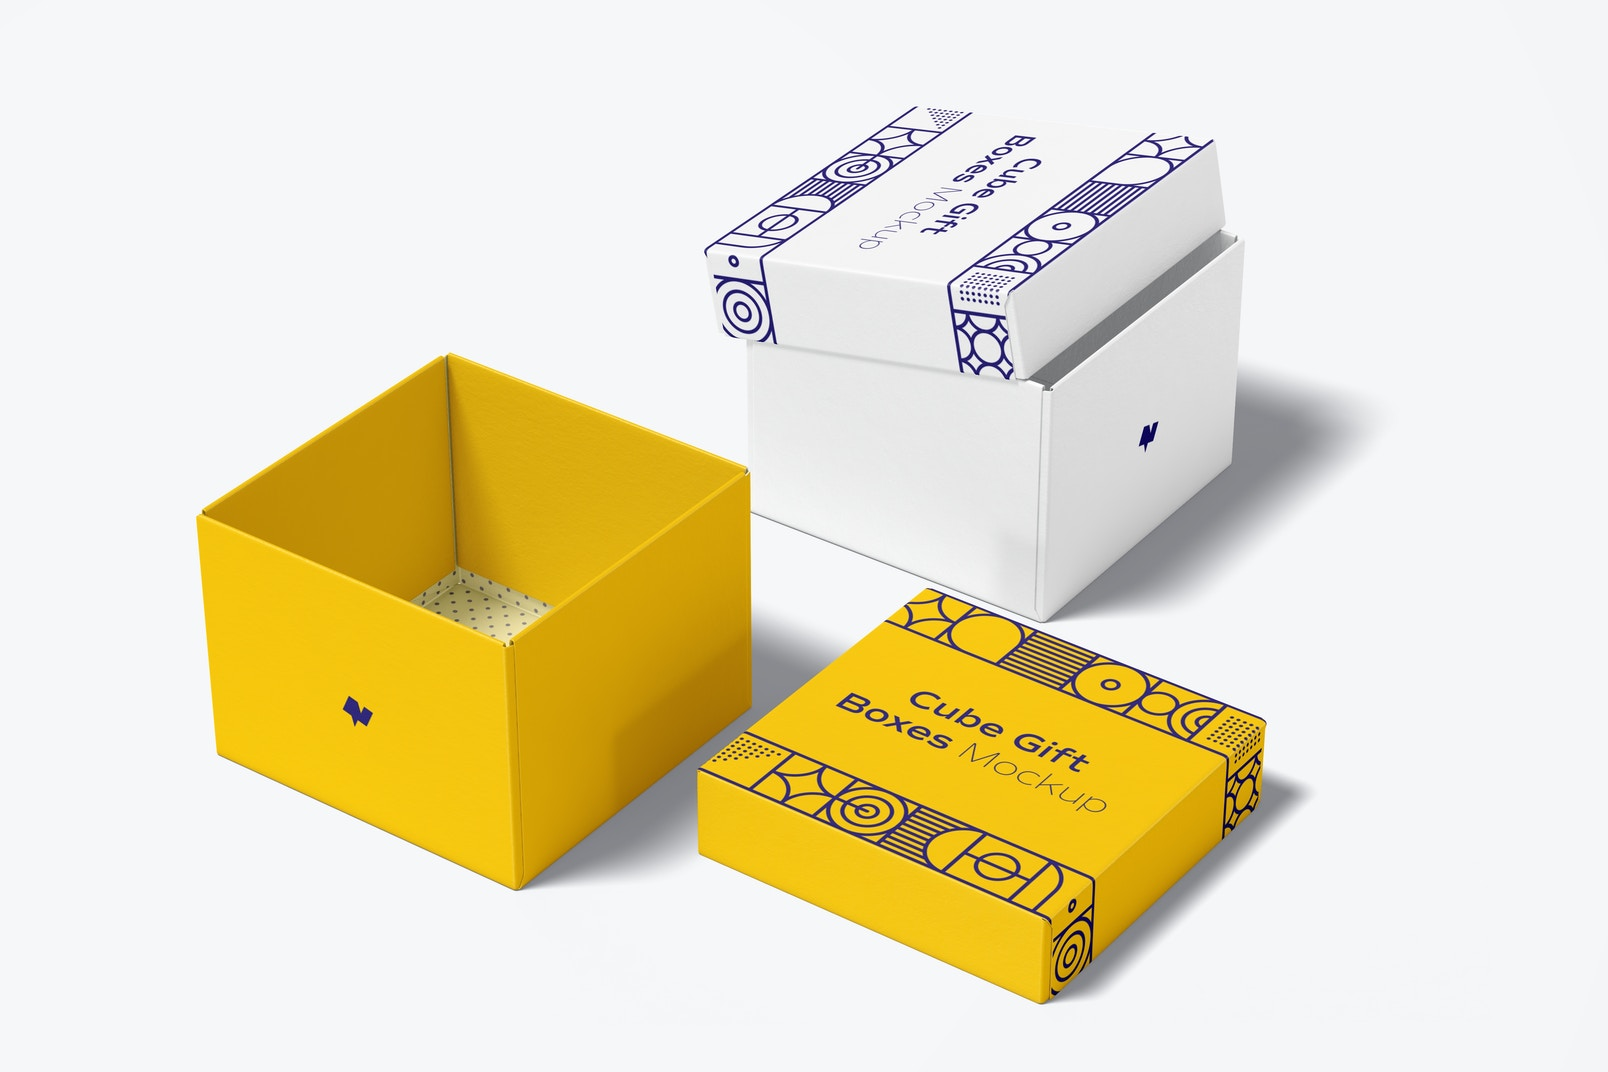 Cube Gift Boxes Mockup, Open and Closed